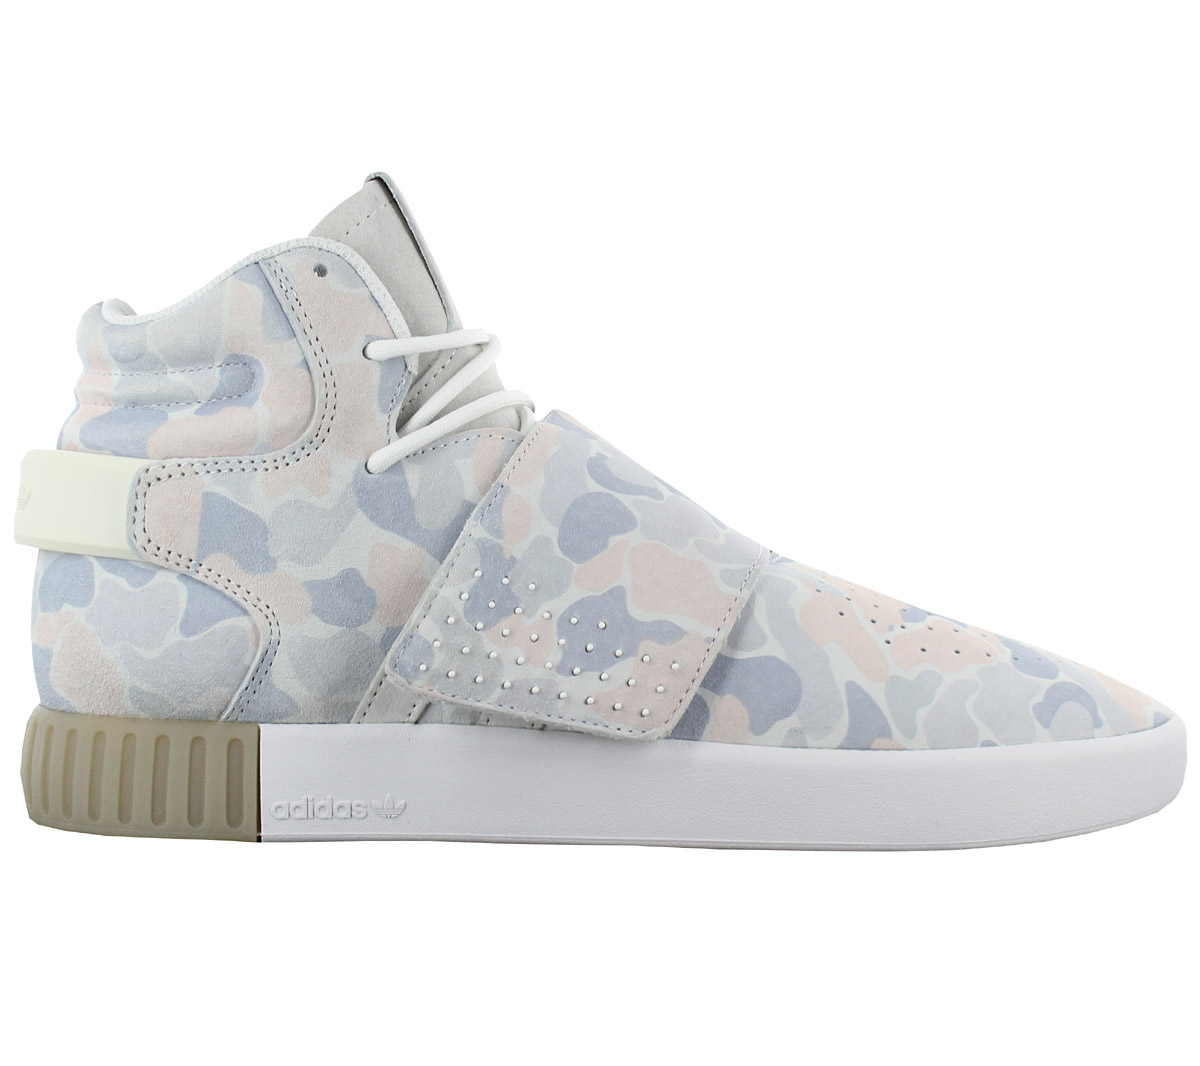 online retailer 31245 99082 Details about Adidas Originals Tubular Invader Camo Camouflage Men's  Sneaker Shoes BB8394